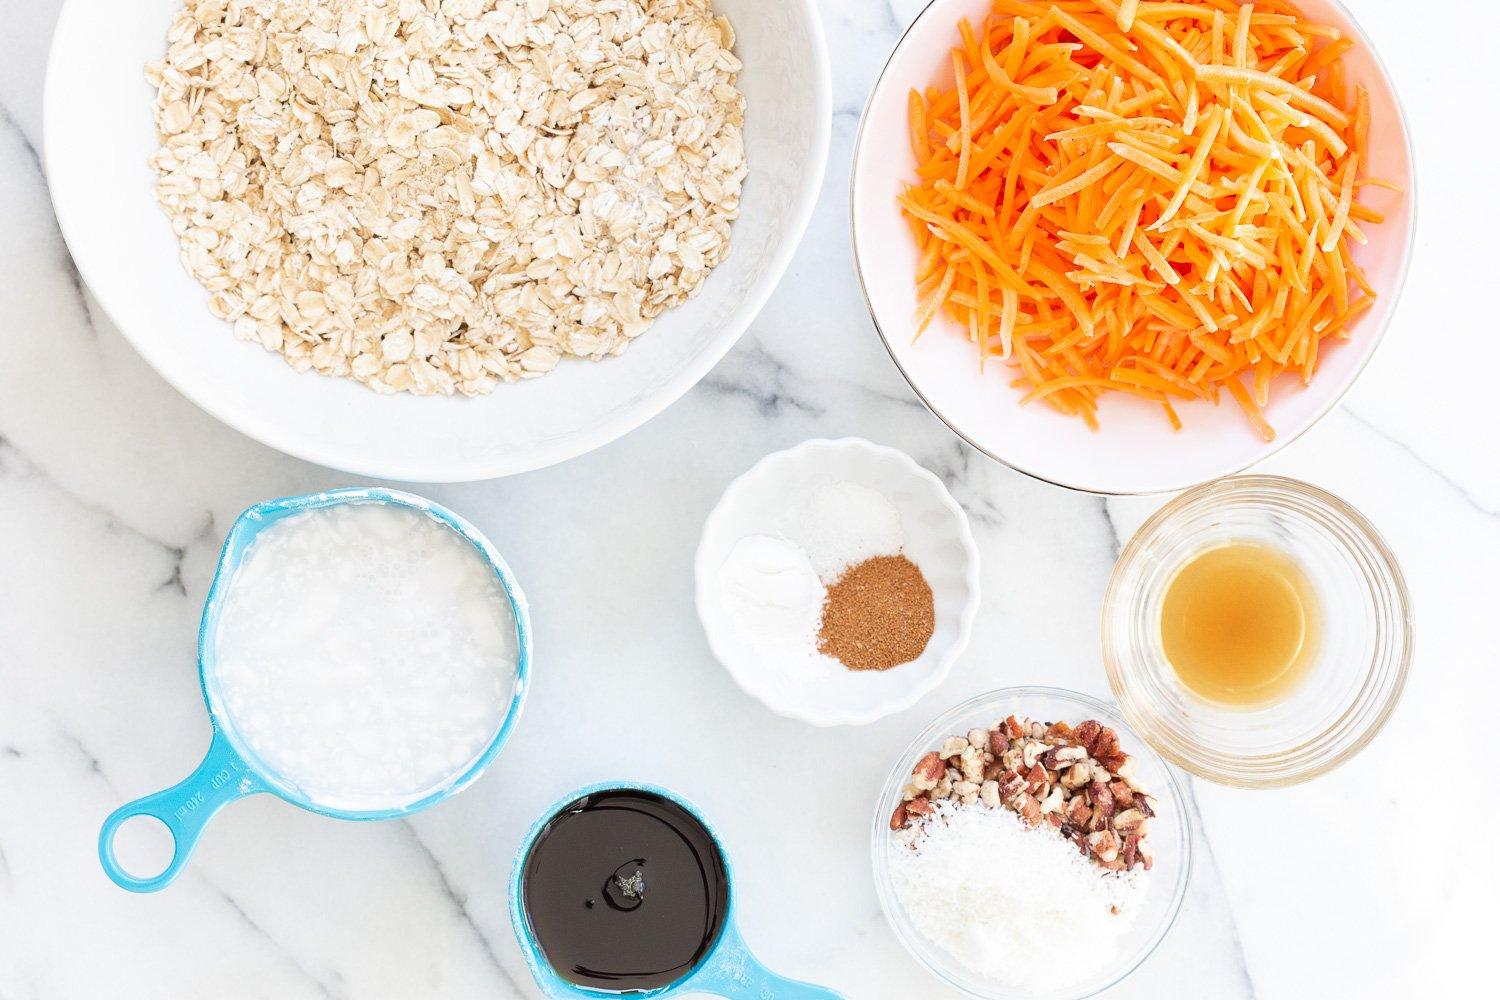 Ingredients for our Vegan Carrot Cake Baked Oatmeal in Bowls